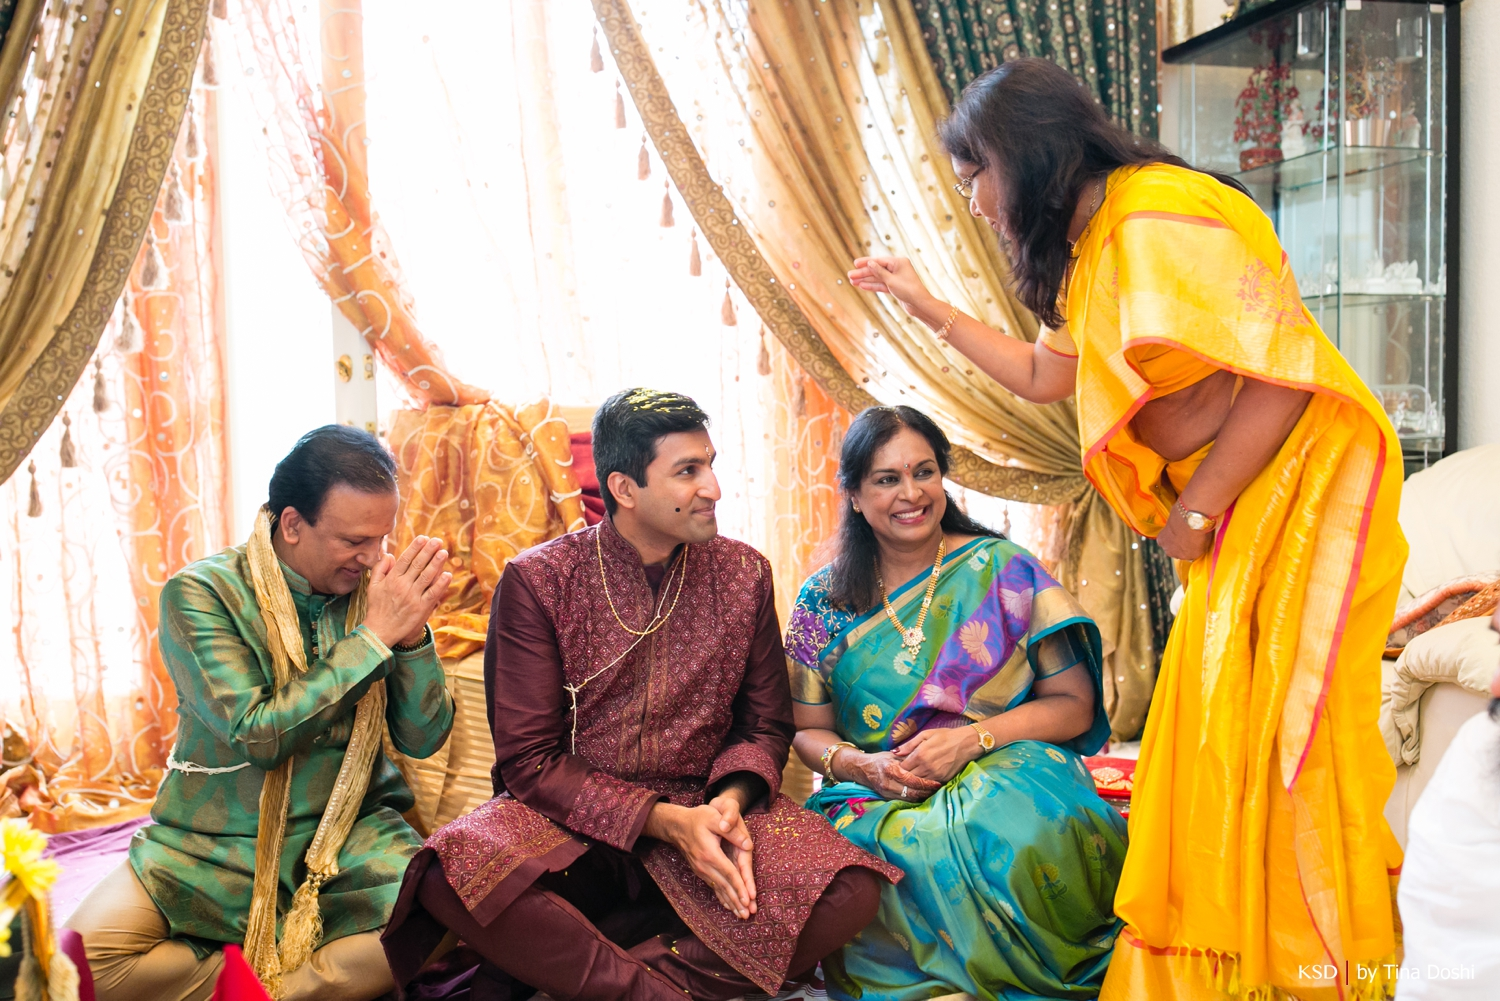 dallas_texas_indian_wedding_0013